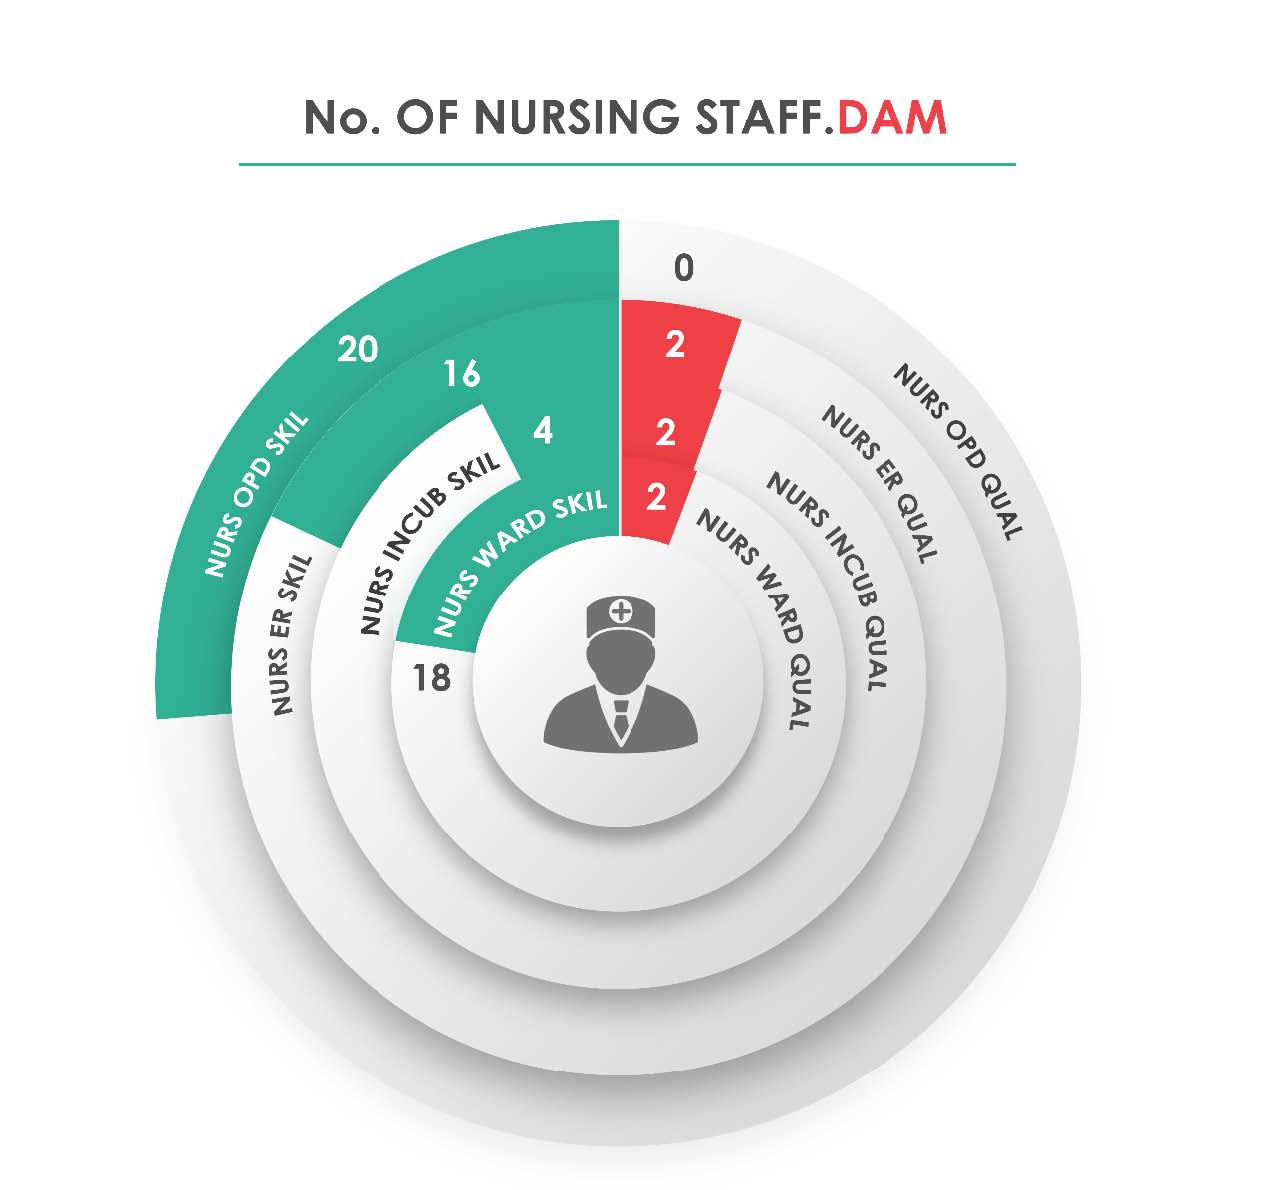 Fig._50.1_Human_Resources_Nursing_Staff__Damascus.jpg